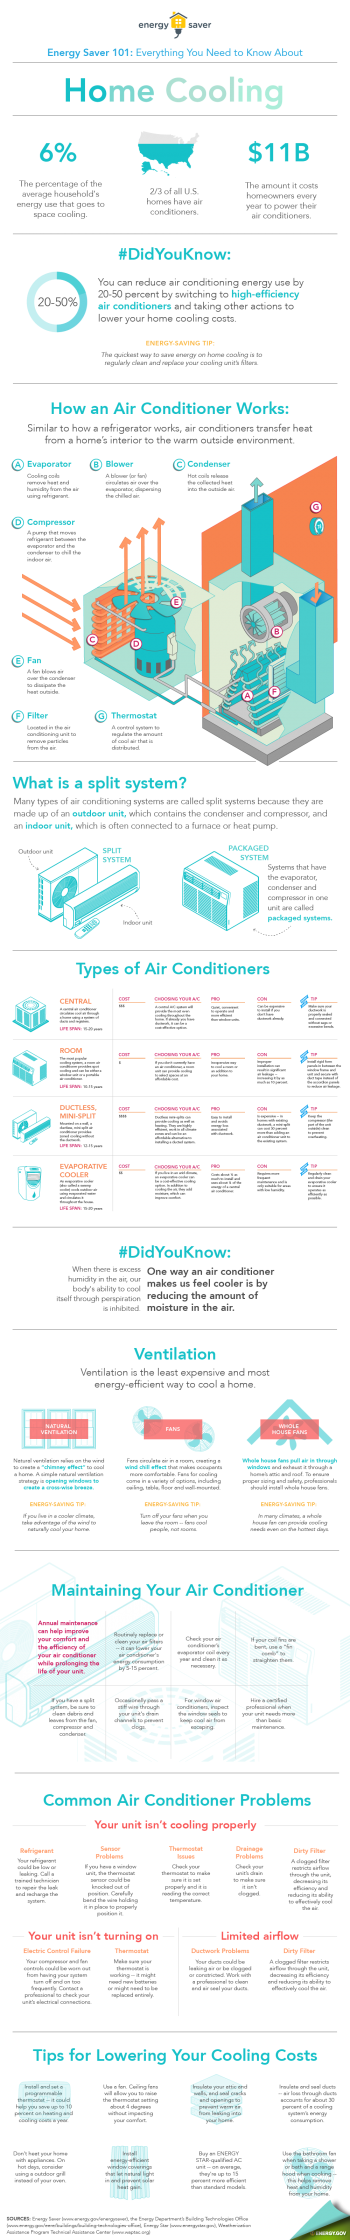 """Our Energy Saver 101 infographic covers everything you need to know about home cooling. Download a <a href=""""node/920771"""">high-resolution version</a> of the home cooling infographic.Infographic by <a href=""""node/379579"""">Sarah Gerrity</a>, Energy Department."""